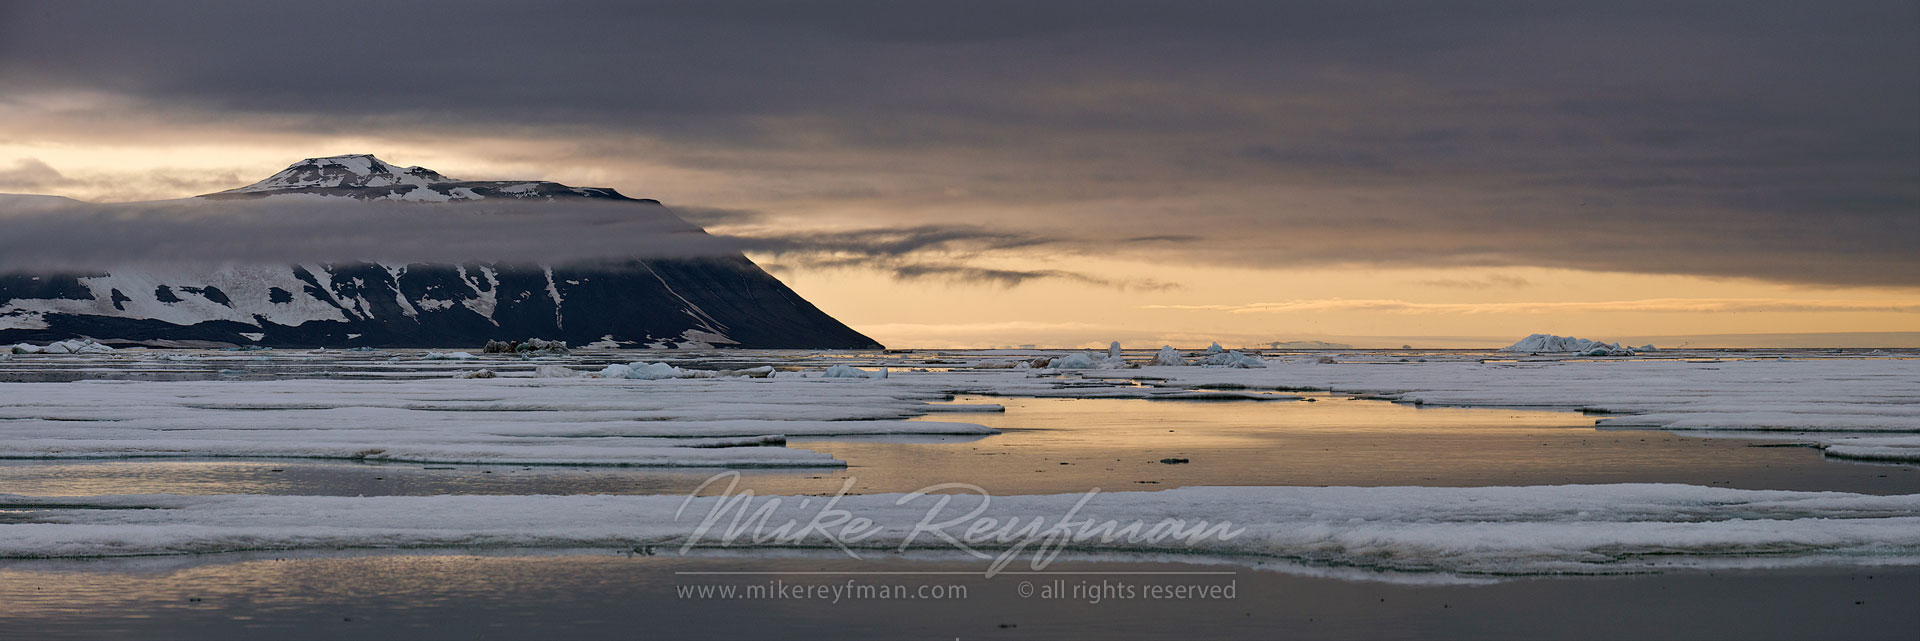 Evening in Hinlopenstretet, Svalbard (Spitsbergen) Archipelago, Norway. - Arctic-Landscape-Svalbard-Spitsbergen-Norway - Mike Reyfman Photography